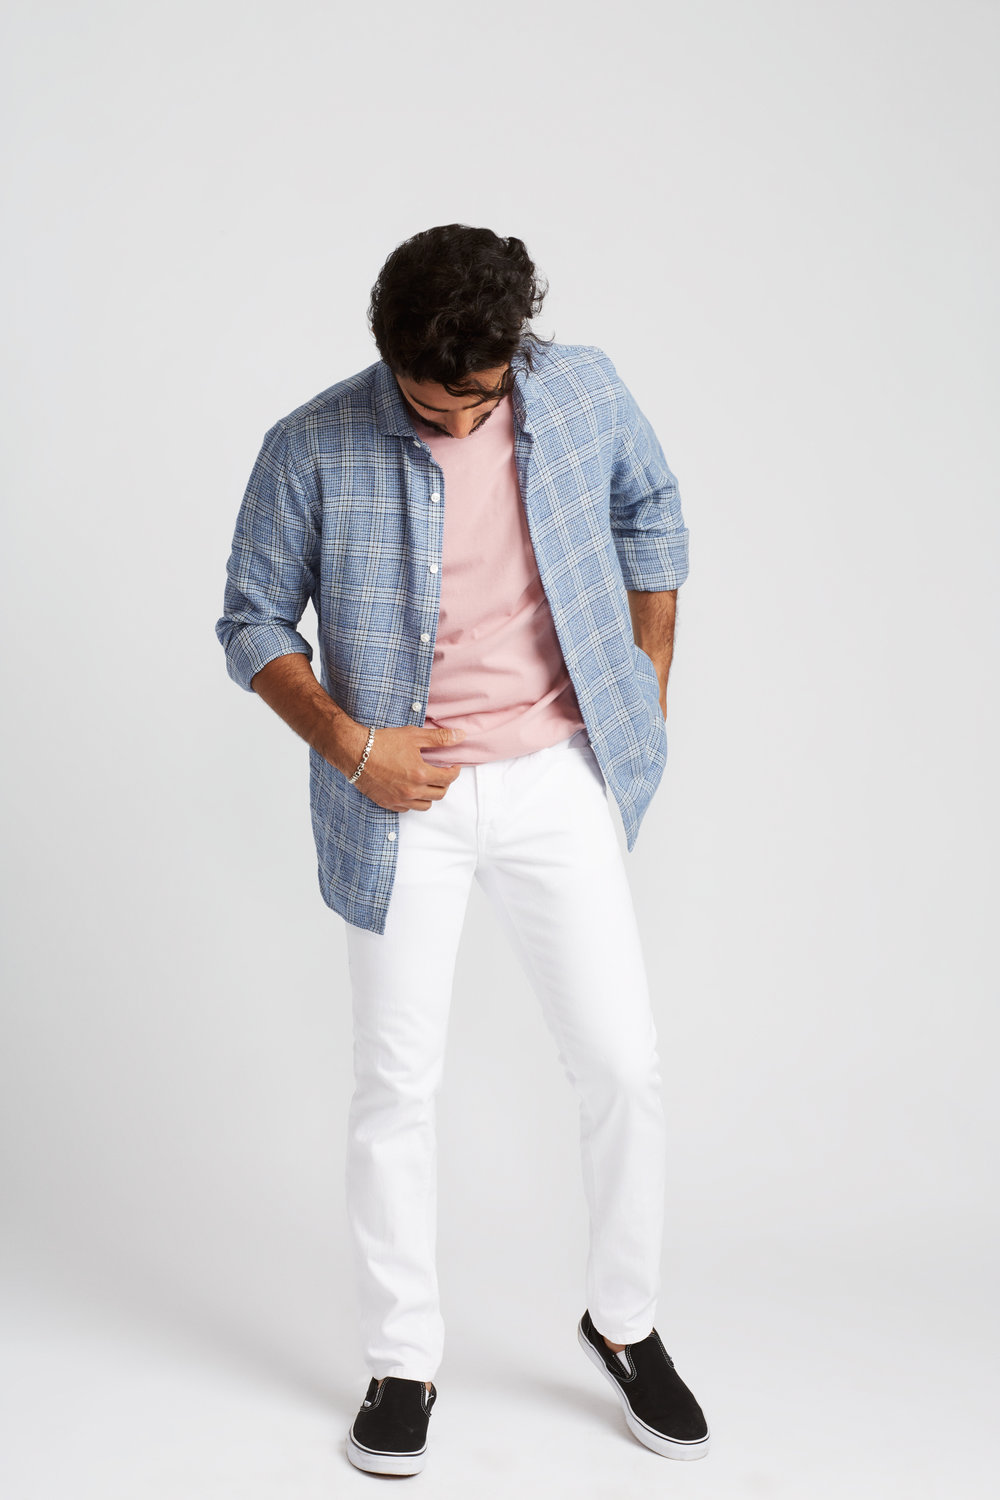 Unbutton_Down_OM_Look03_376_v2.jpg